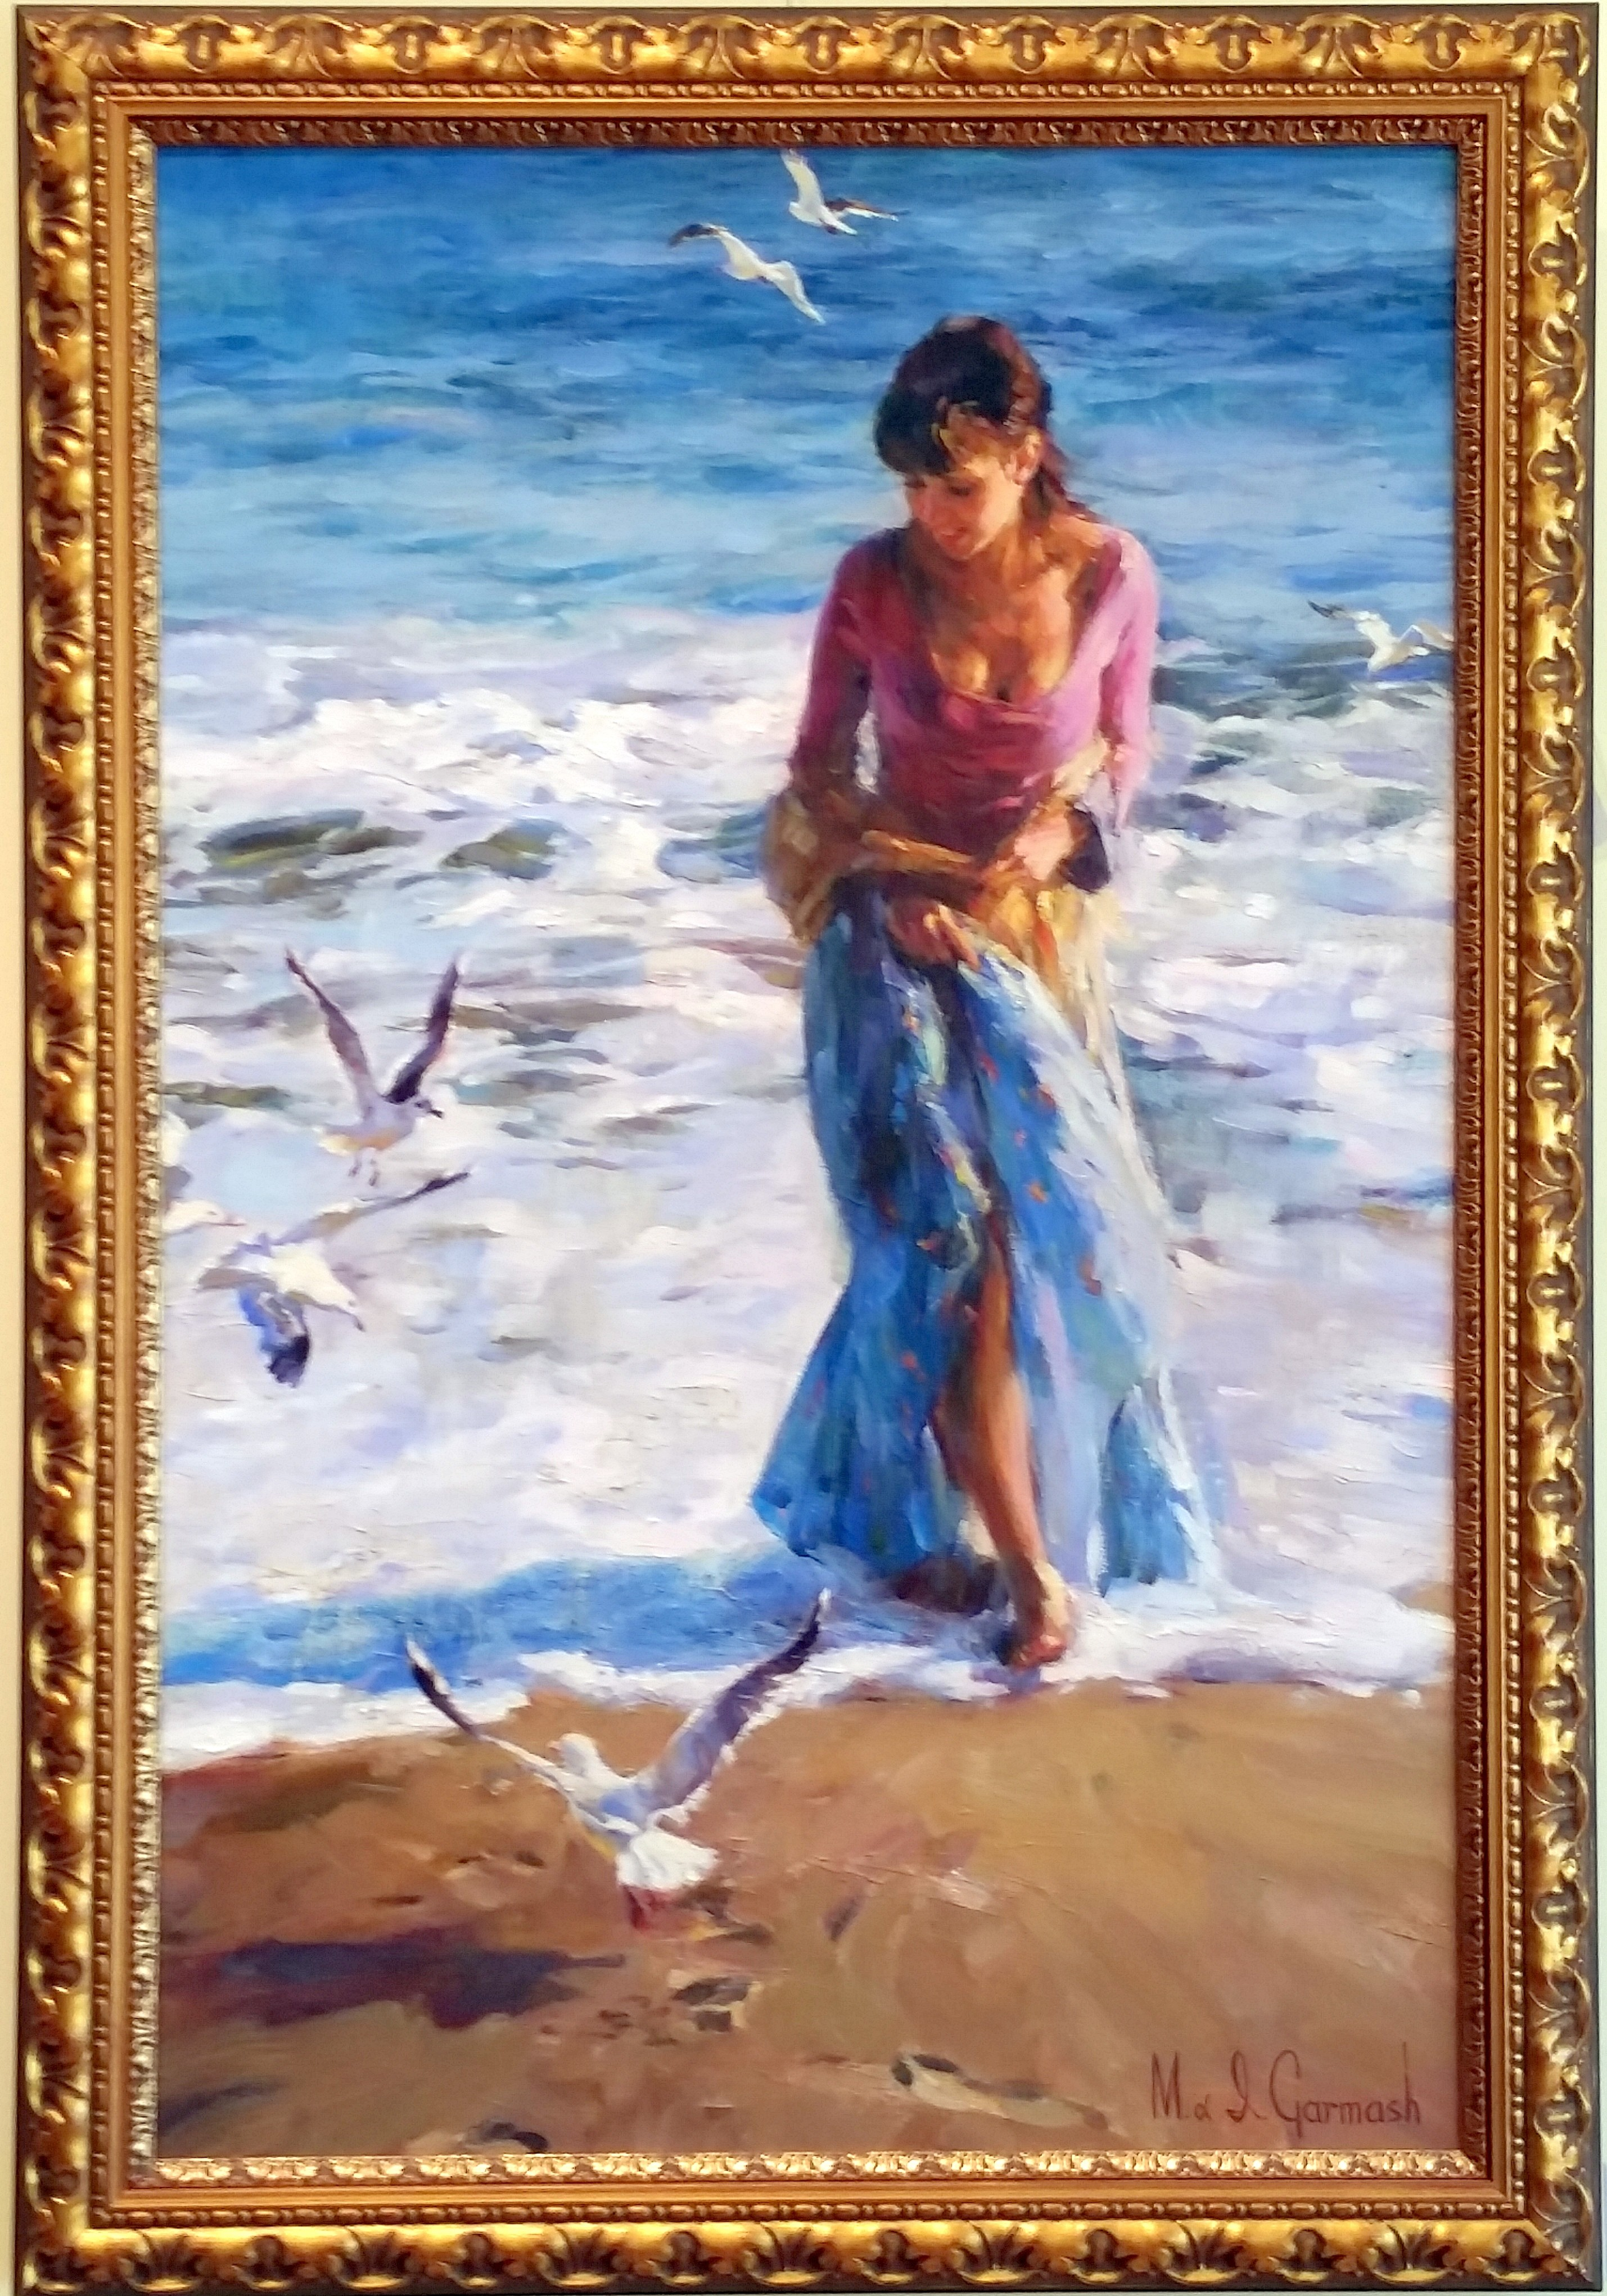 Mon Cheri, Irene Sheri, figurative, impressionistic, beach, seaside painting, oil on canvas, Garmash artists, seagulls, walk